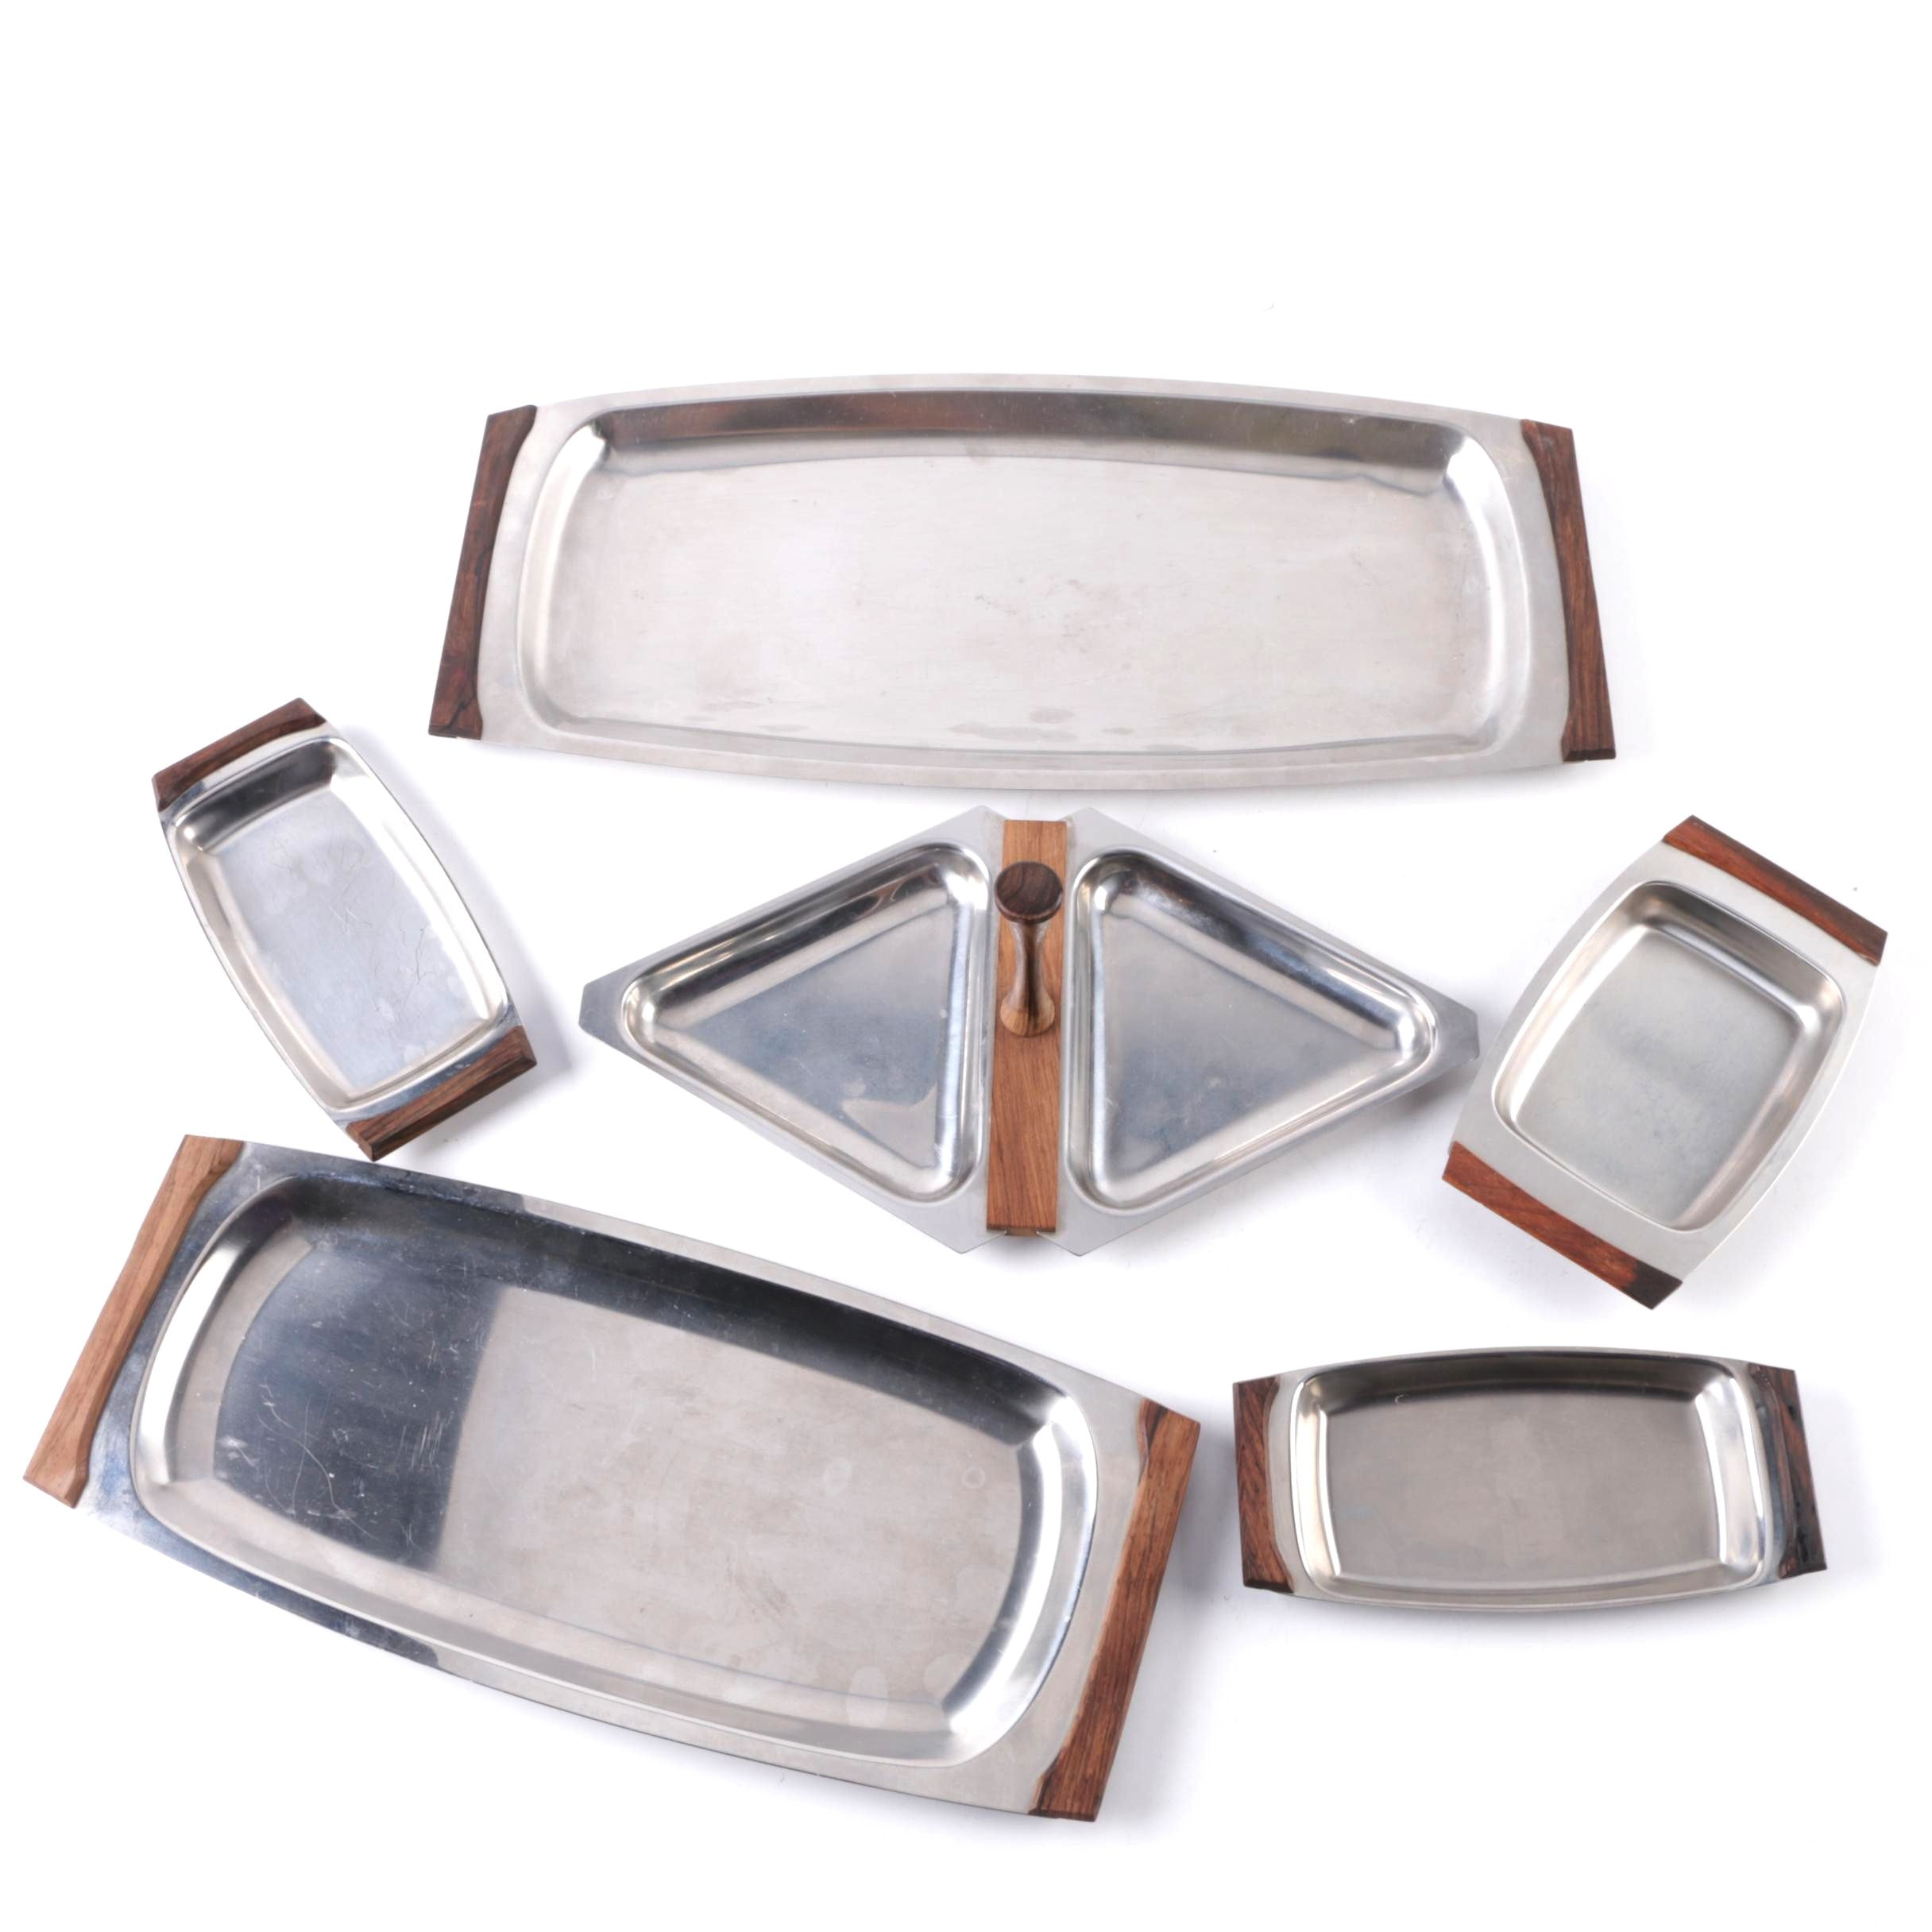 Danish Modern Style Dishes with DKF Lundtofte Trays